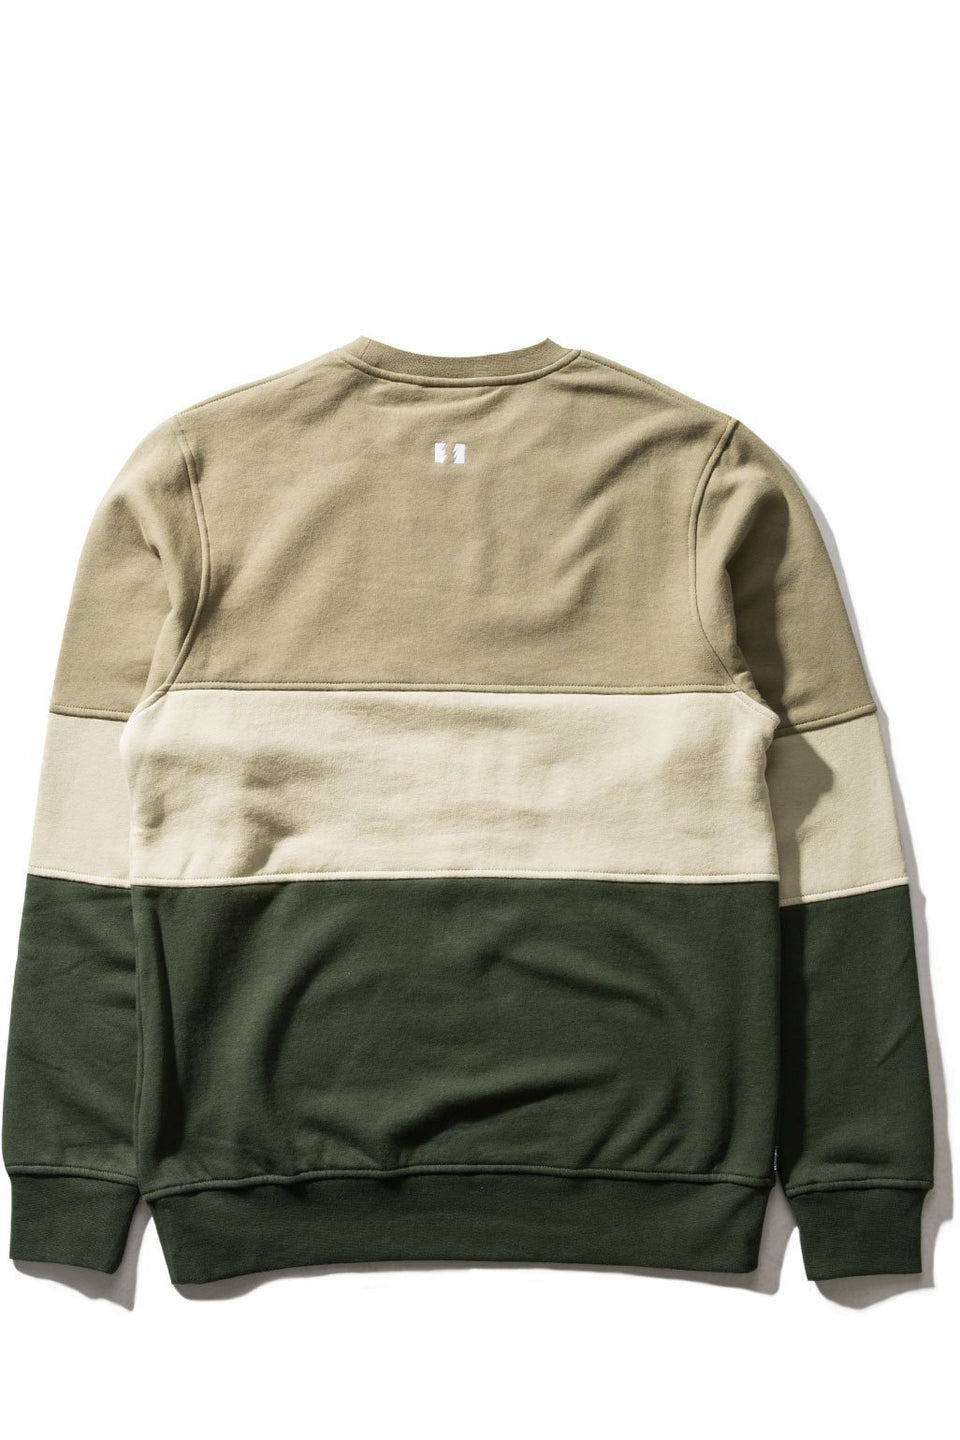 Channel Crewneck-TOPS-The Hundreds UK